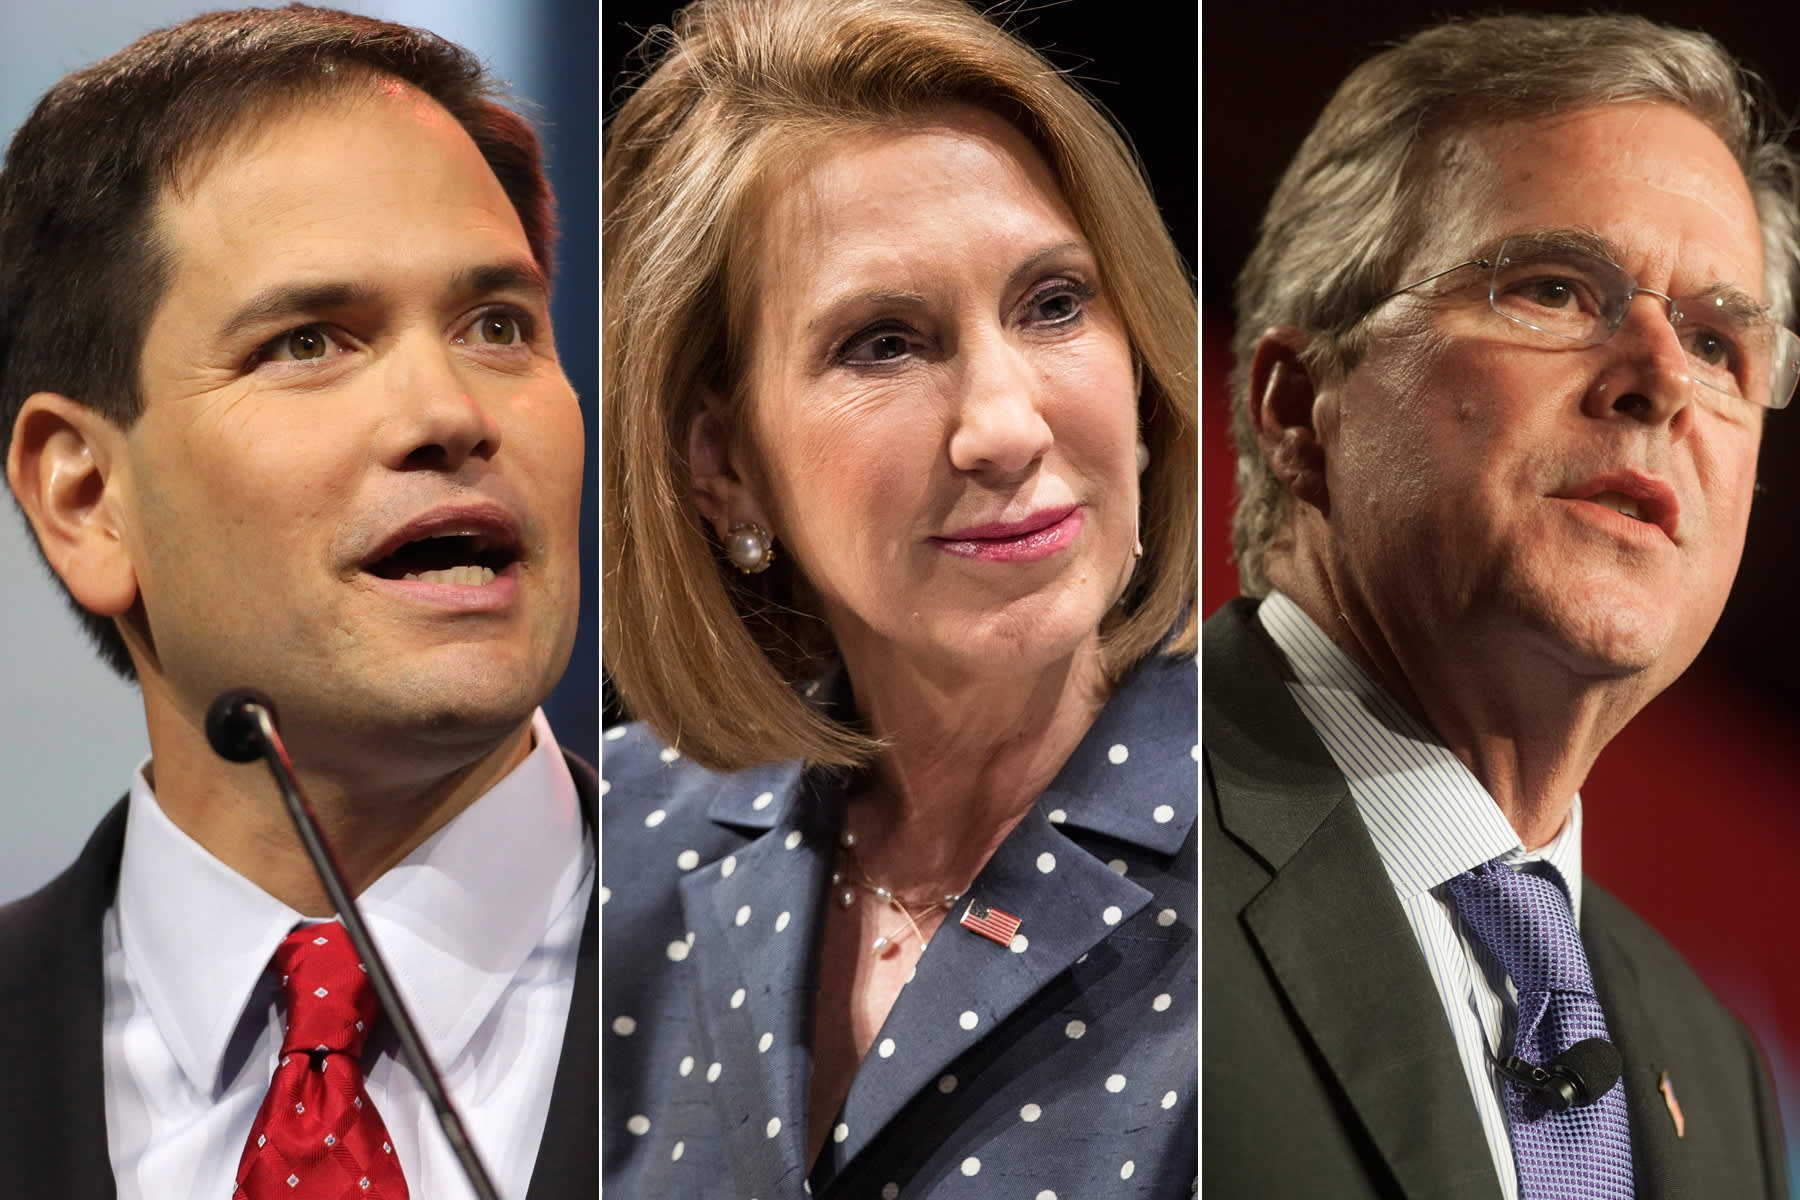 Who in the GOP is attracting tech money?